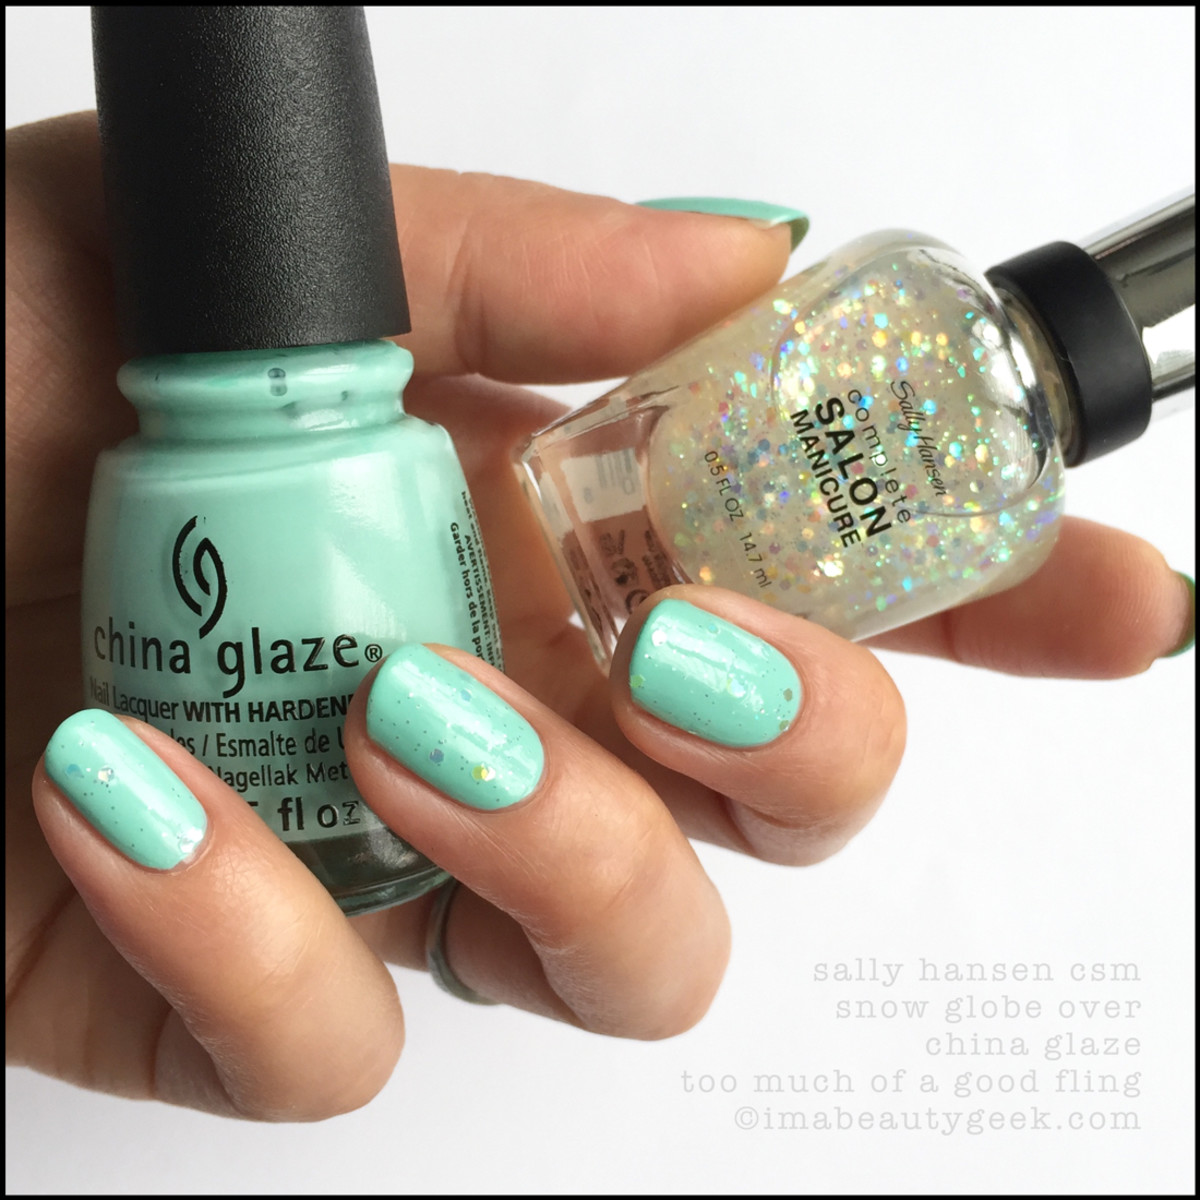 Sally Hansen Snow Globe over China Glaze Too Much of a Good Fling